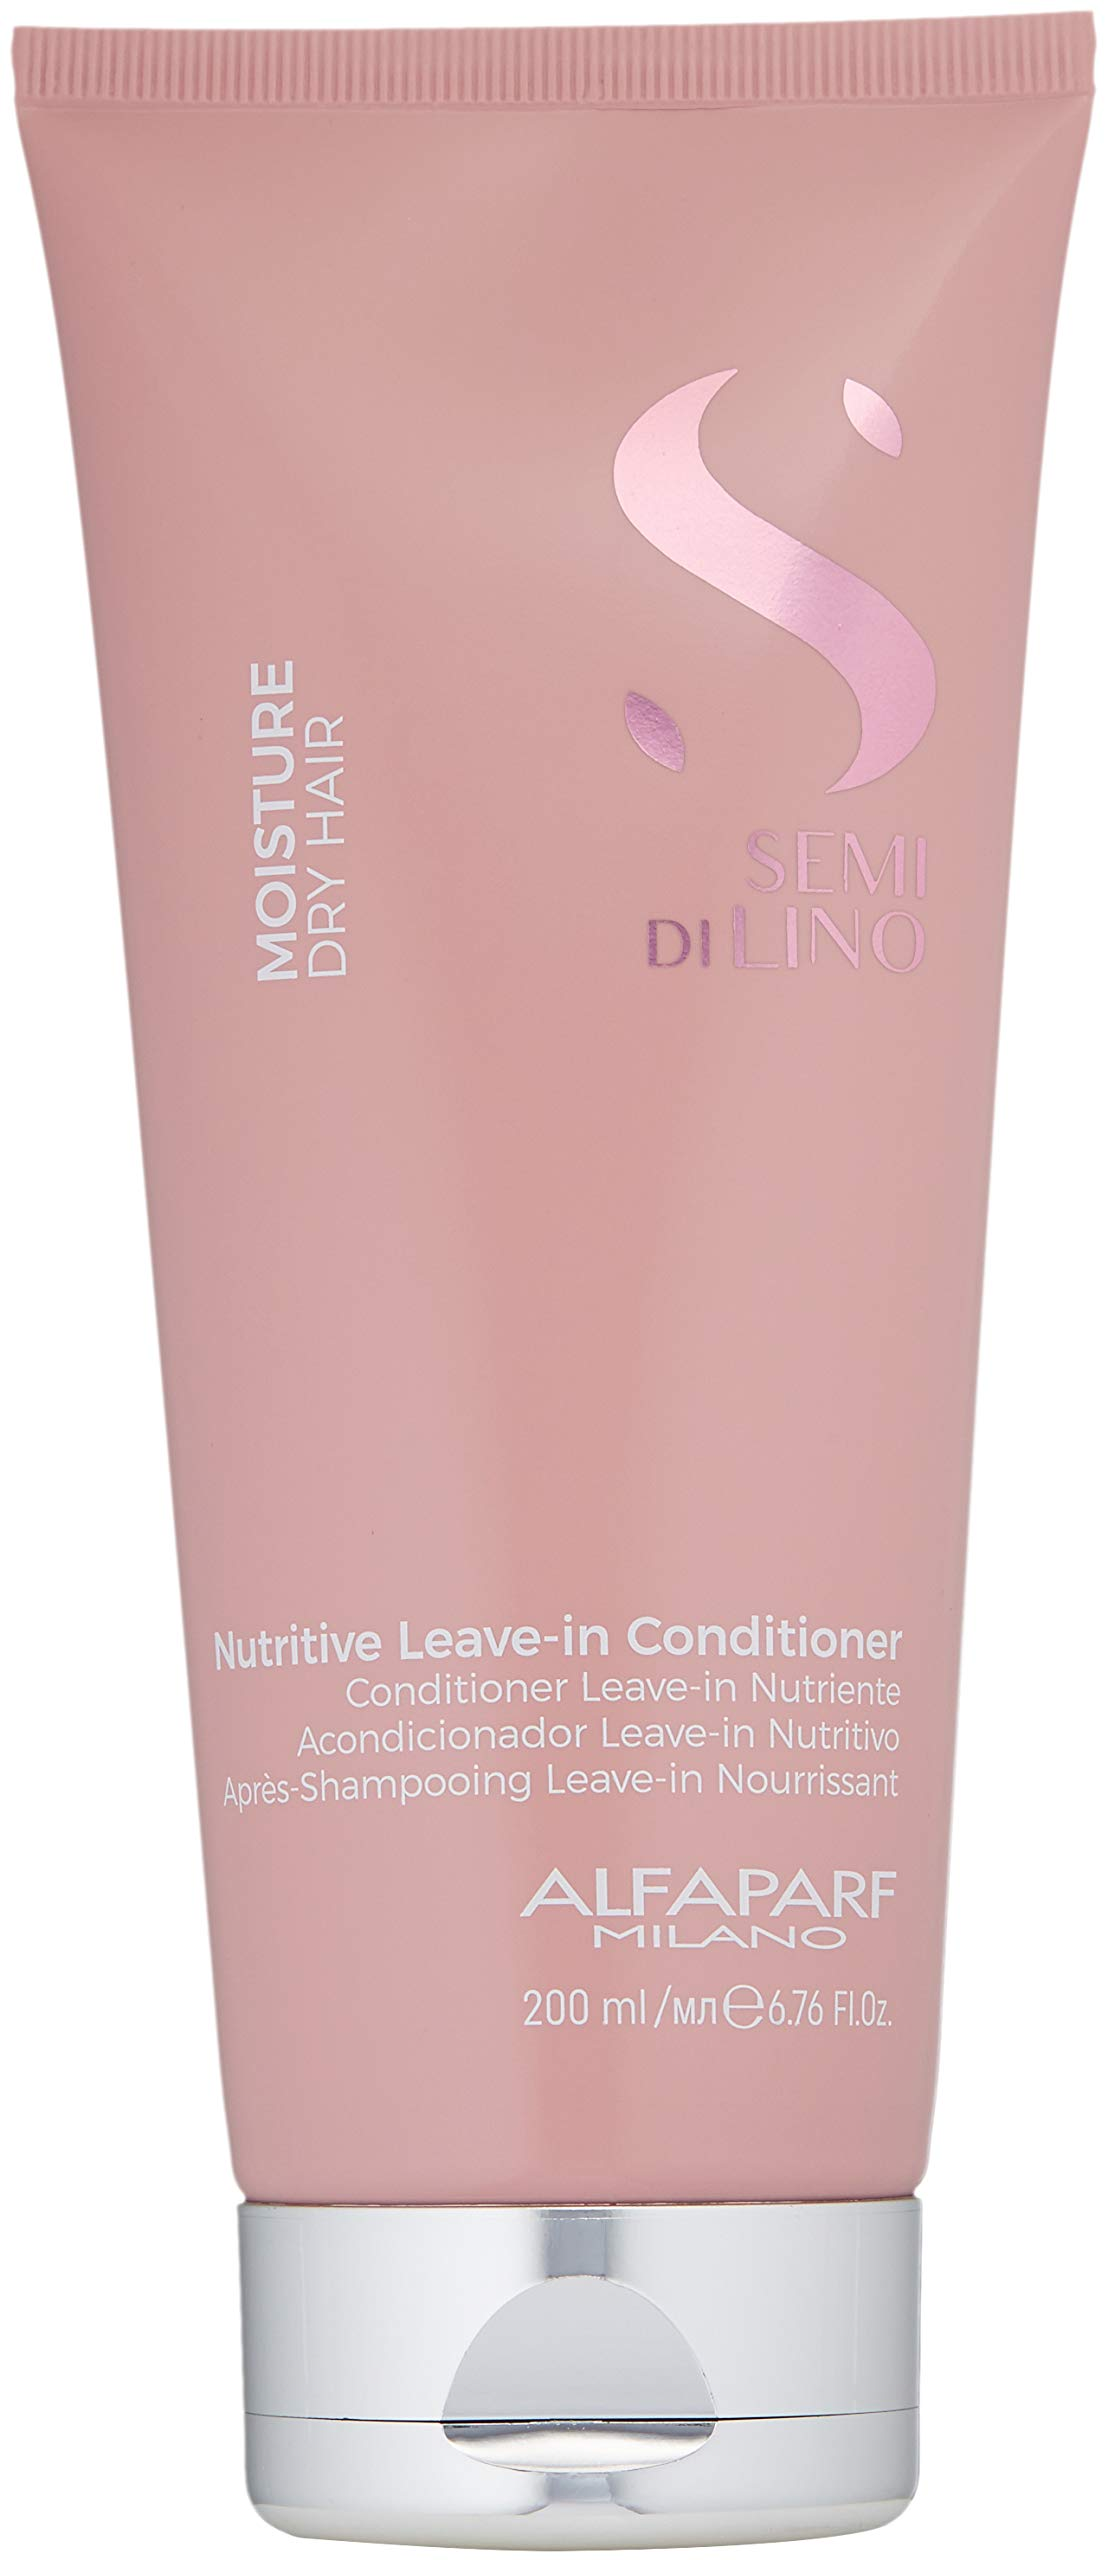 Alfaparf Milano Semi Di Lino Moisture Nutritive Leave-in Sulfate Free Conditioner for Dry Hair - Professional Salon Quality - SLS, Paraben and Paraffin Free - Safe on Color Treated Hair by Alfaparf Milano